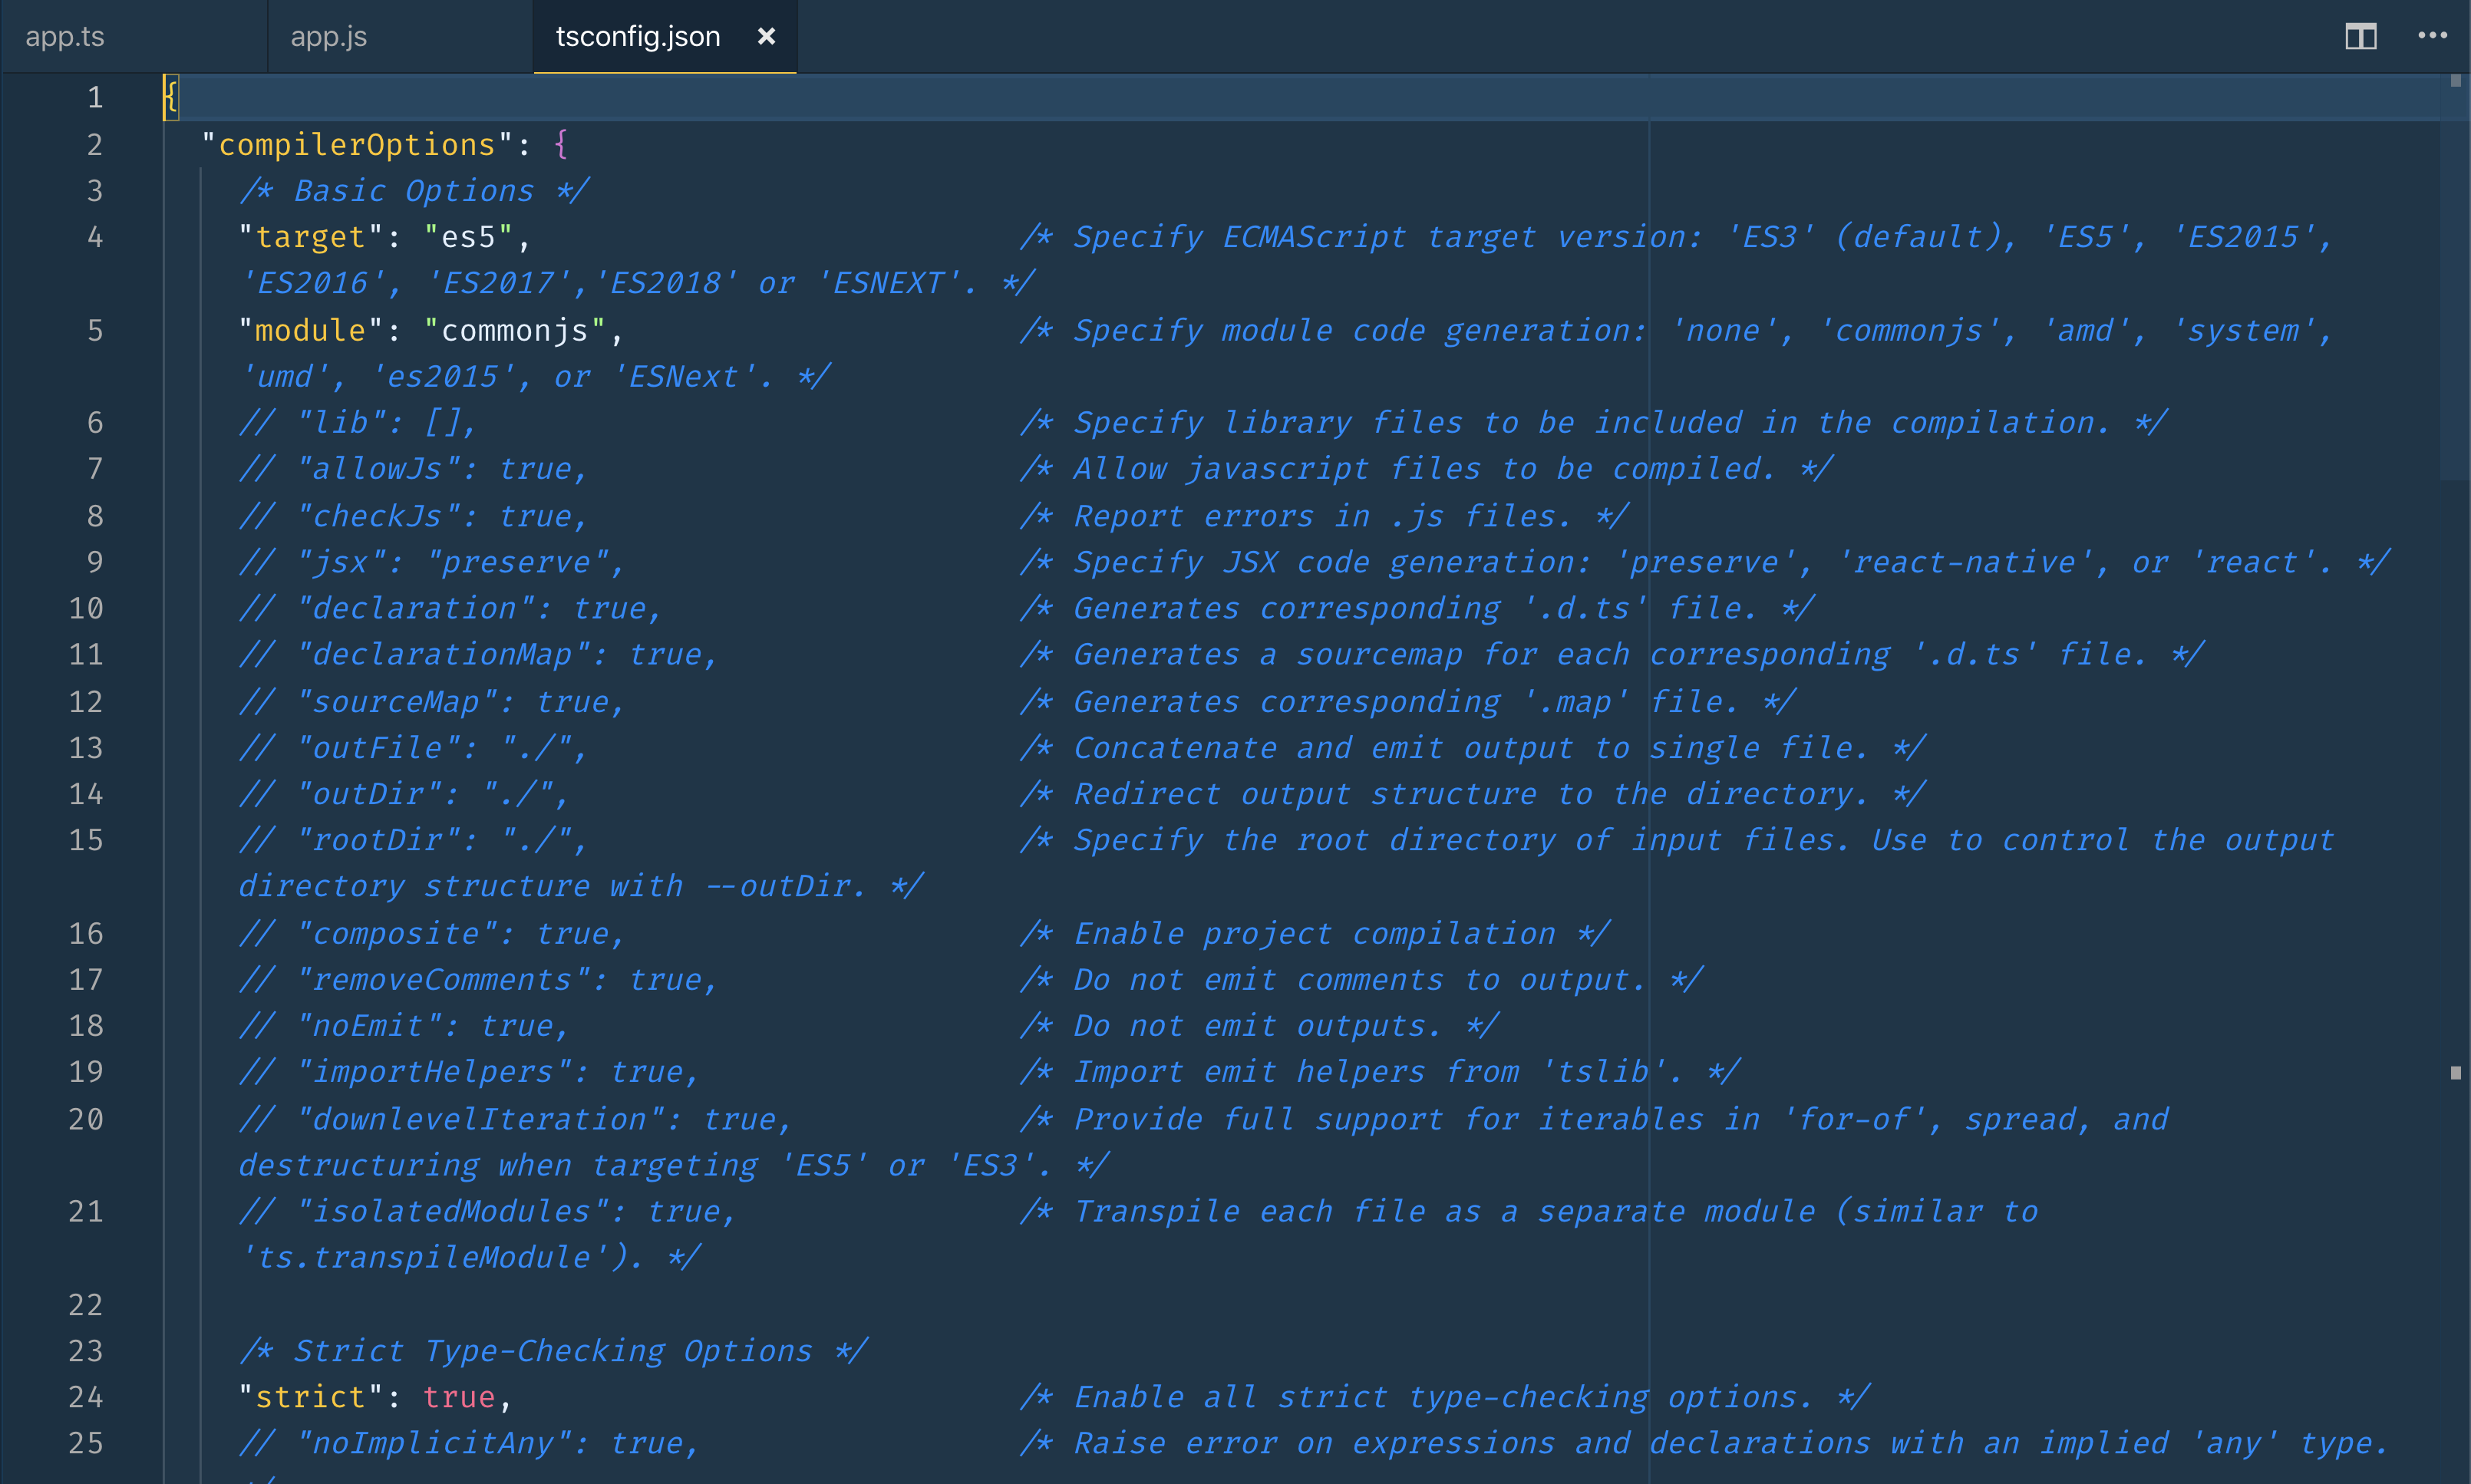 options listed and commented out in the new config file